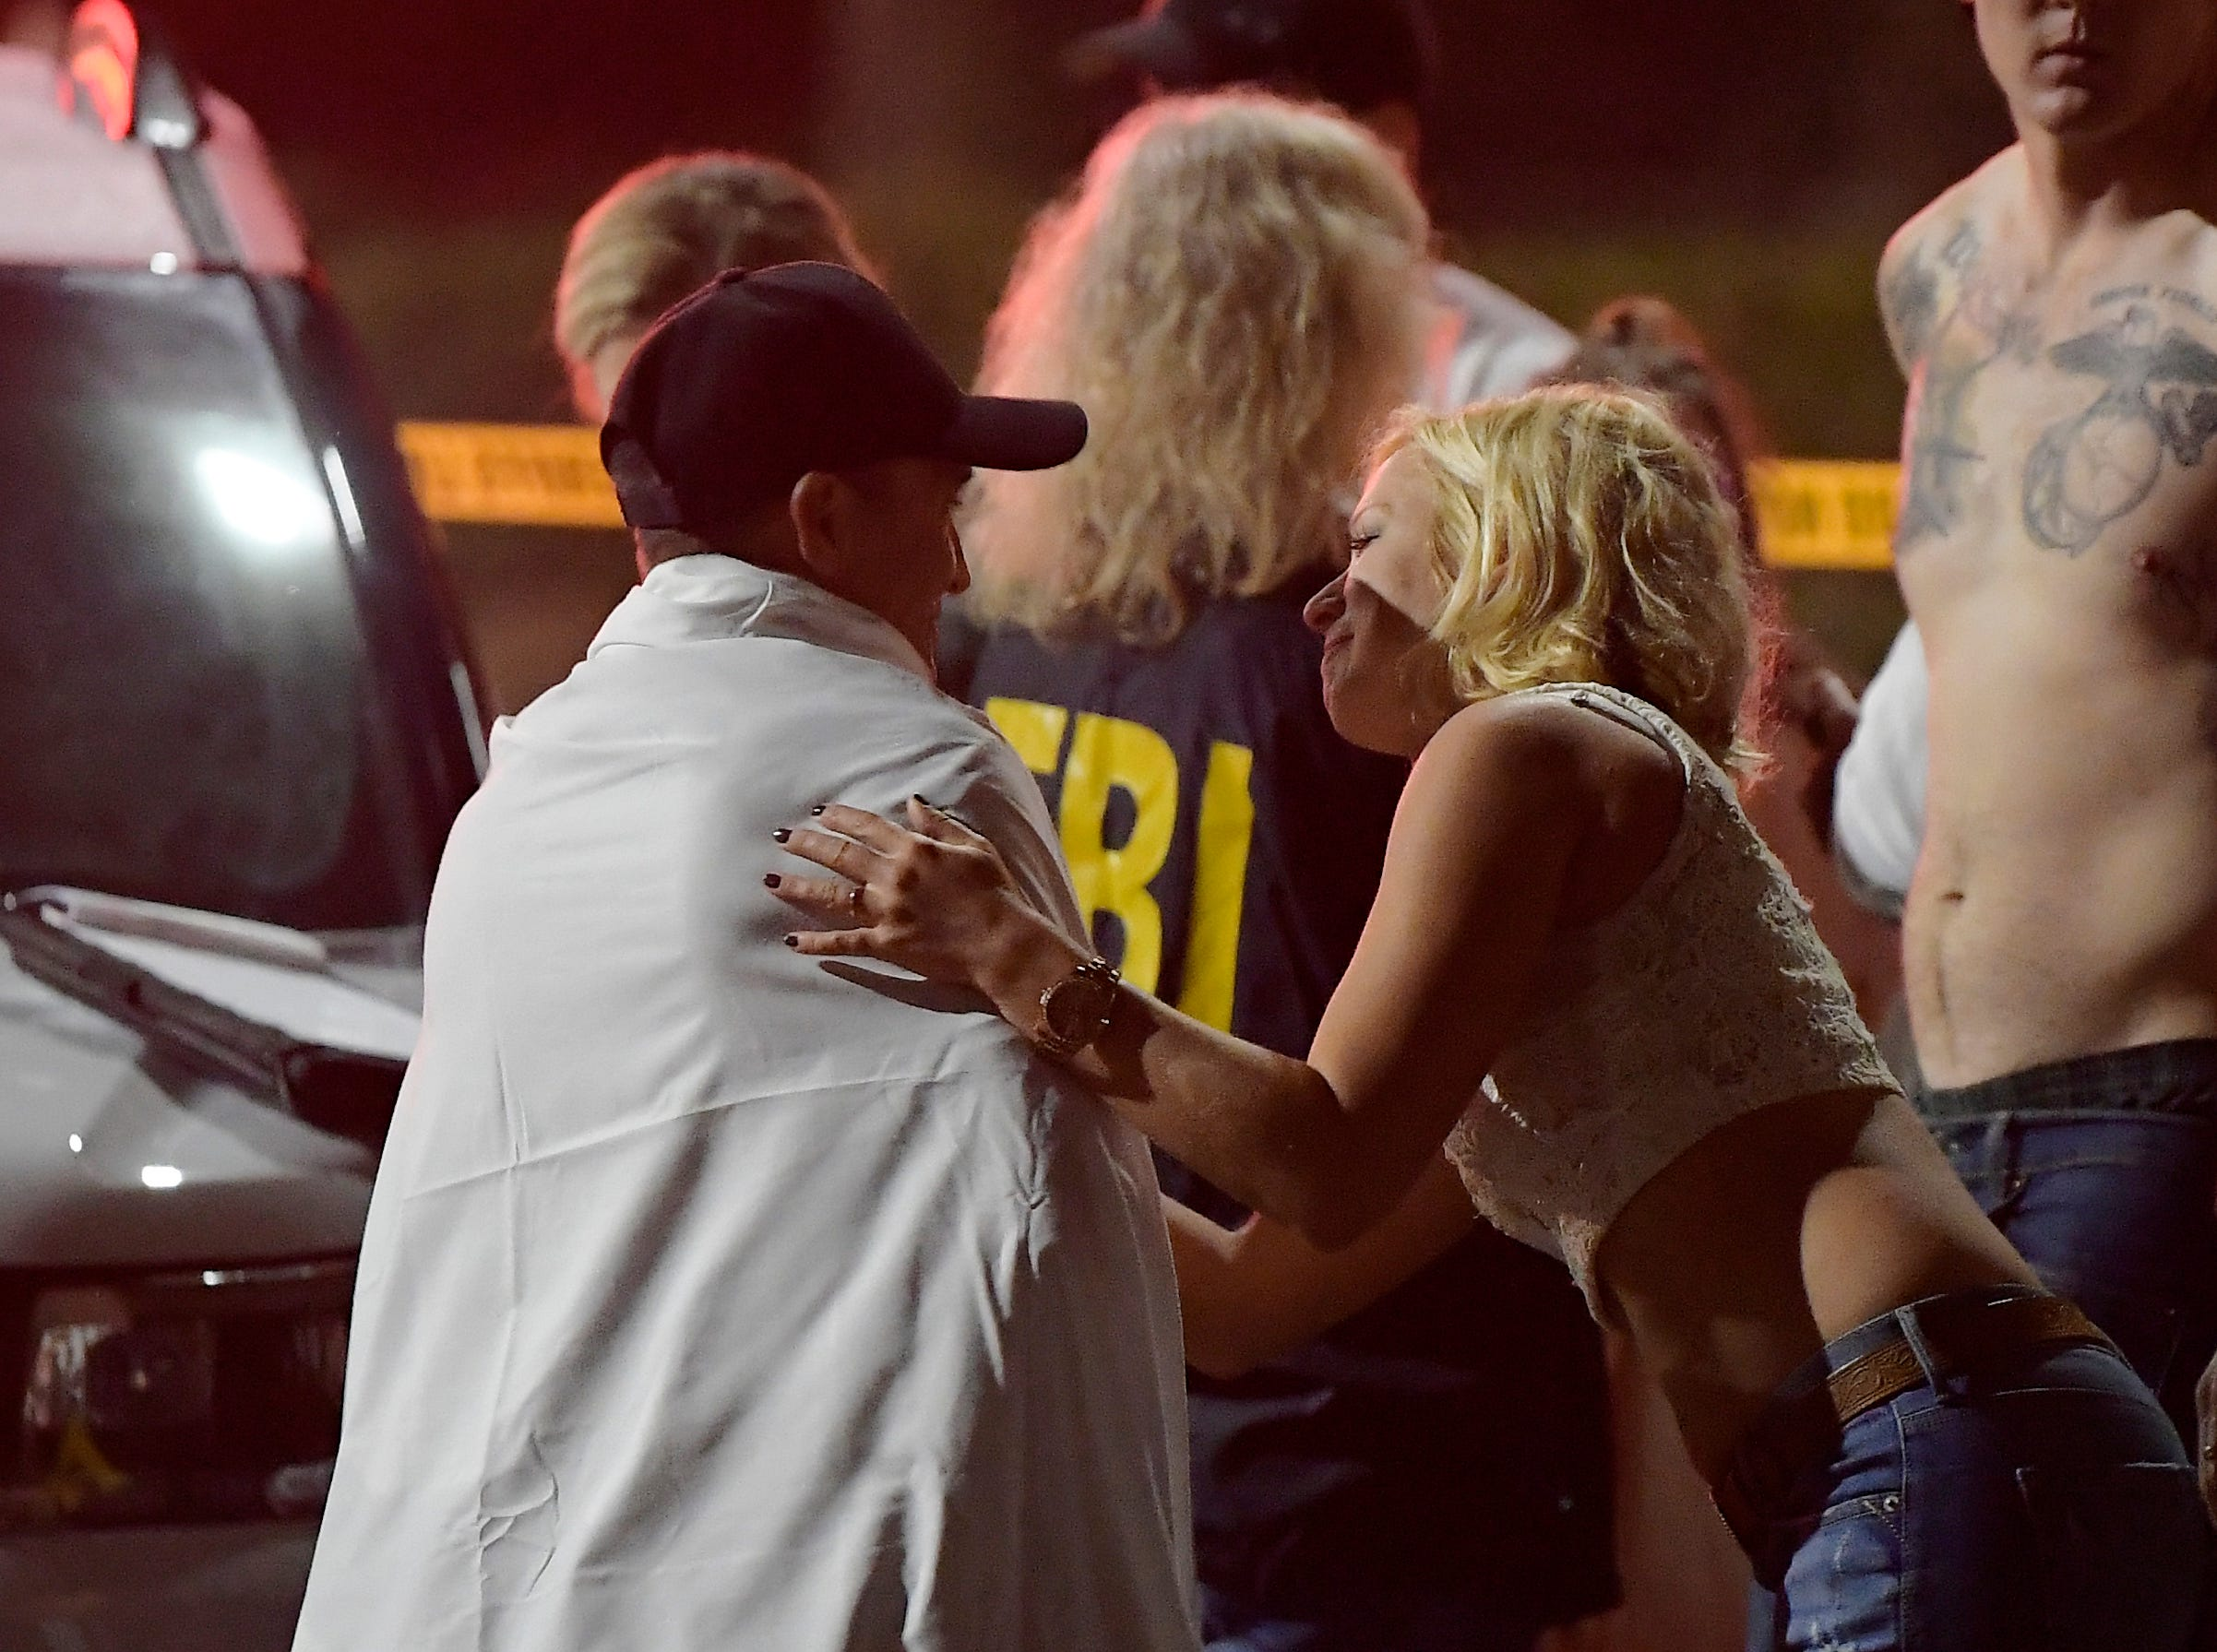 People comfort each other as they stand near the scene Thursday in Thousand Oaks  after a mass shooting at the Borderline Bar & Grill.